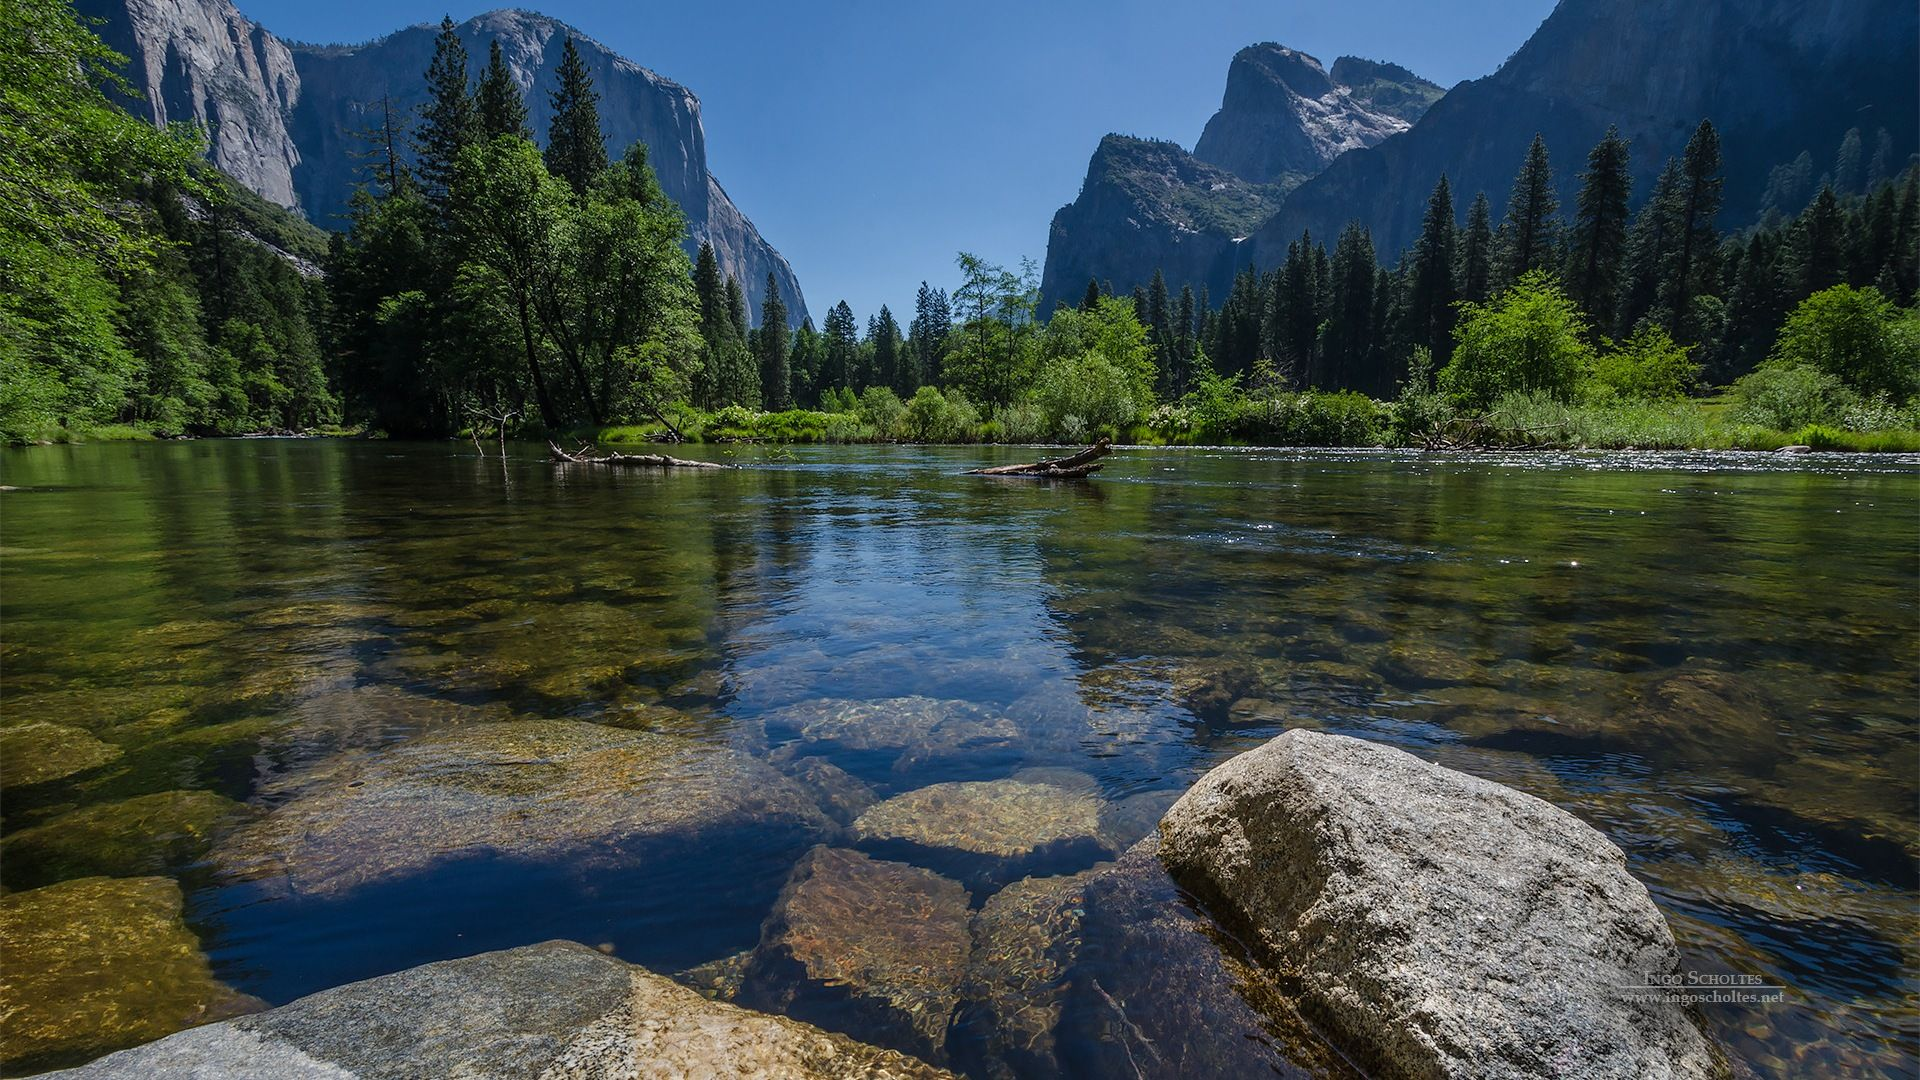 Windows 8 theme yosemite national park hd wallpapers 1 for Ideanature